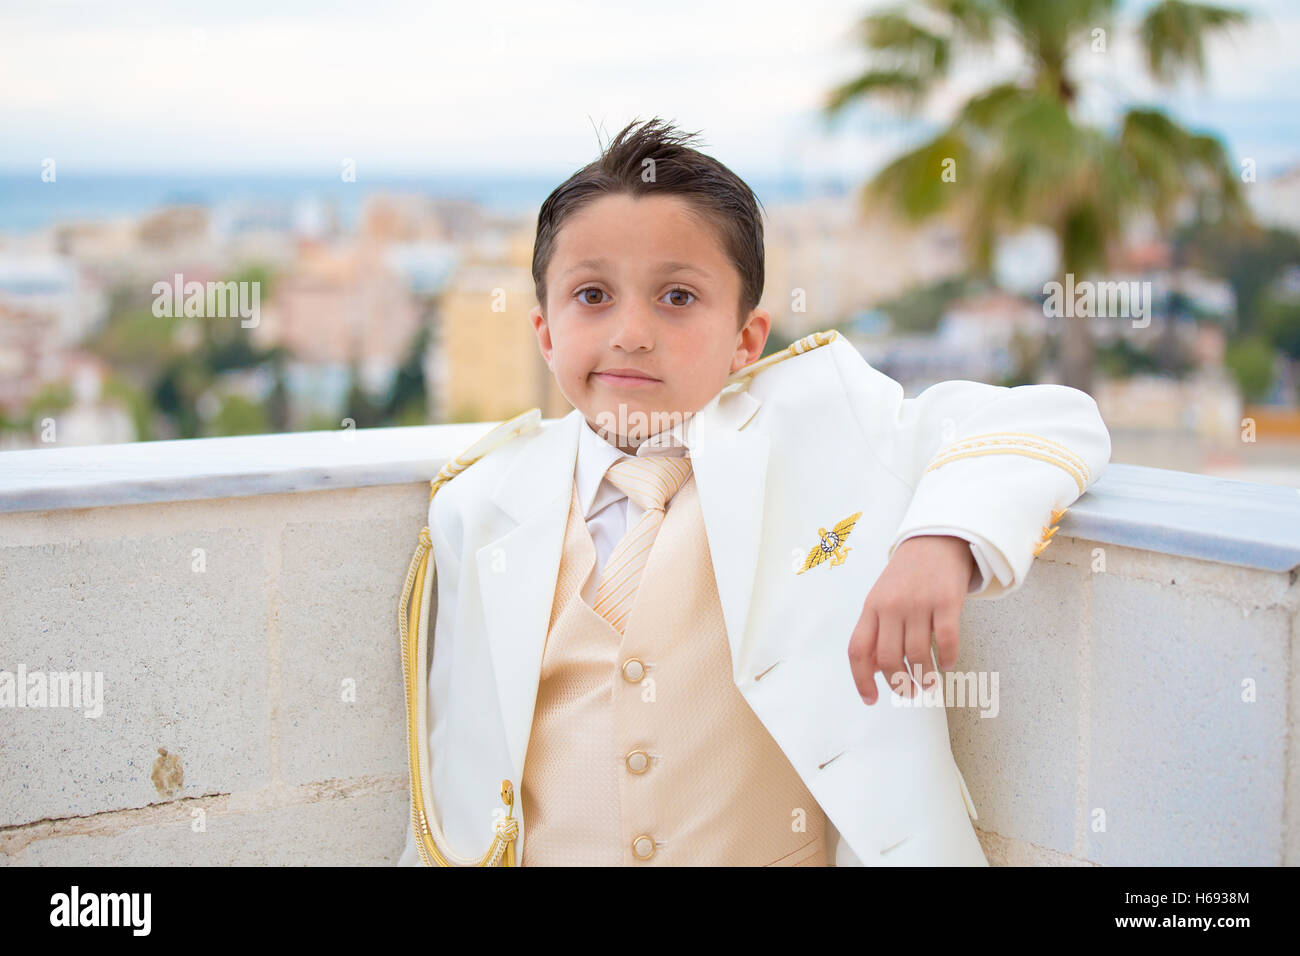 Young boy with white suit leaning on a wall with his elbow in his First Communion. - Stock Image